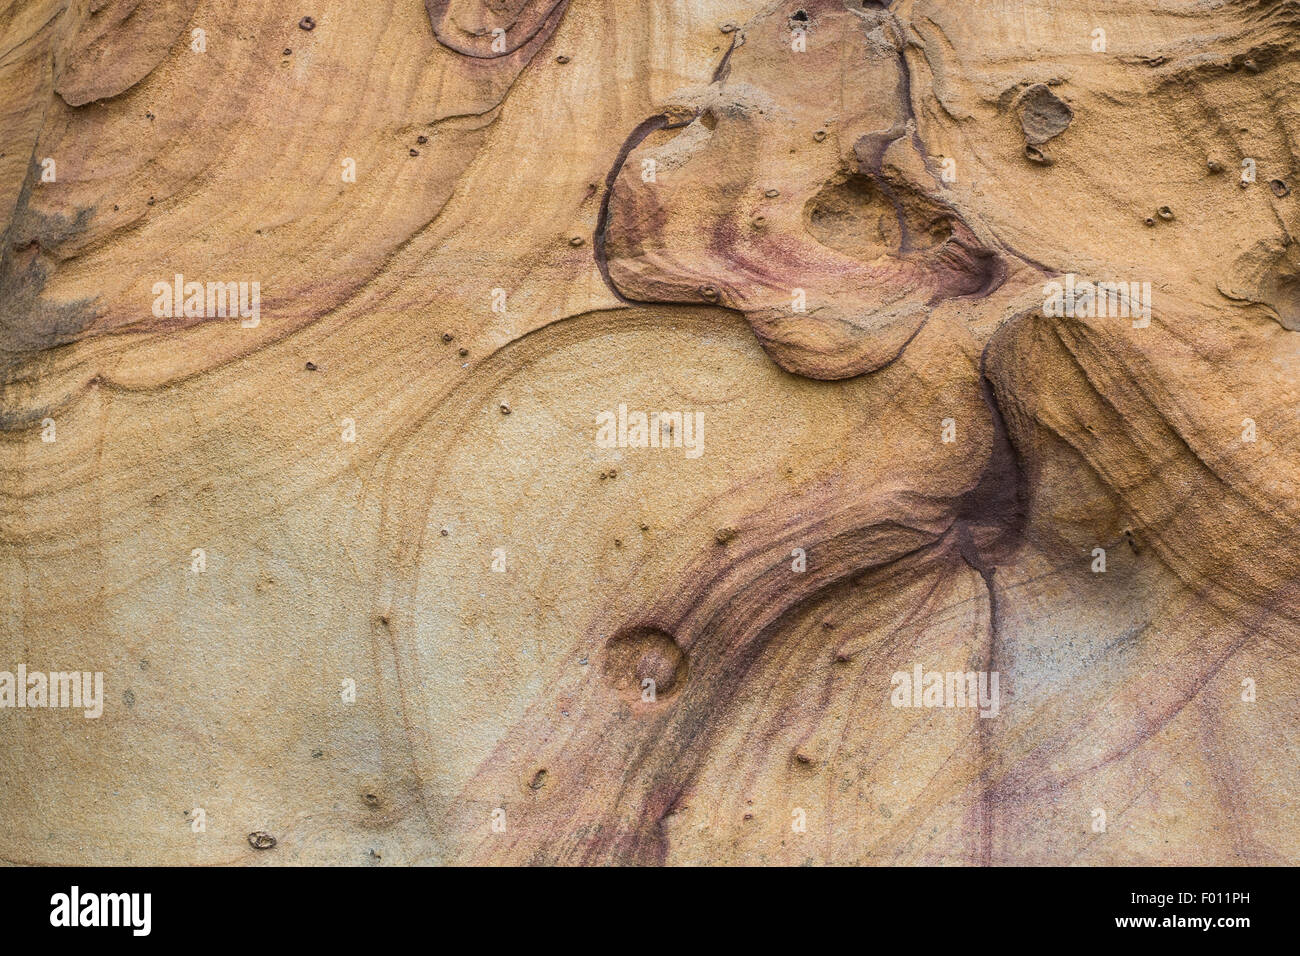 Abstract pattern in a natural sandstone cliff. Stock Photo